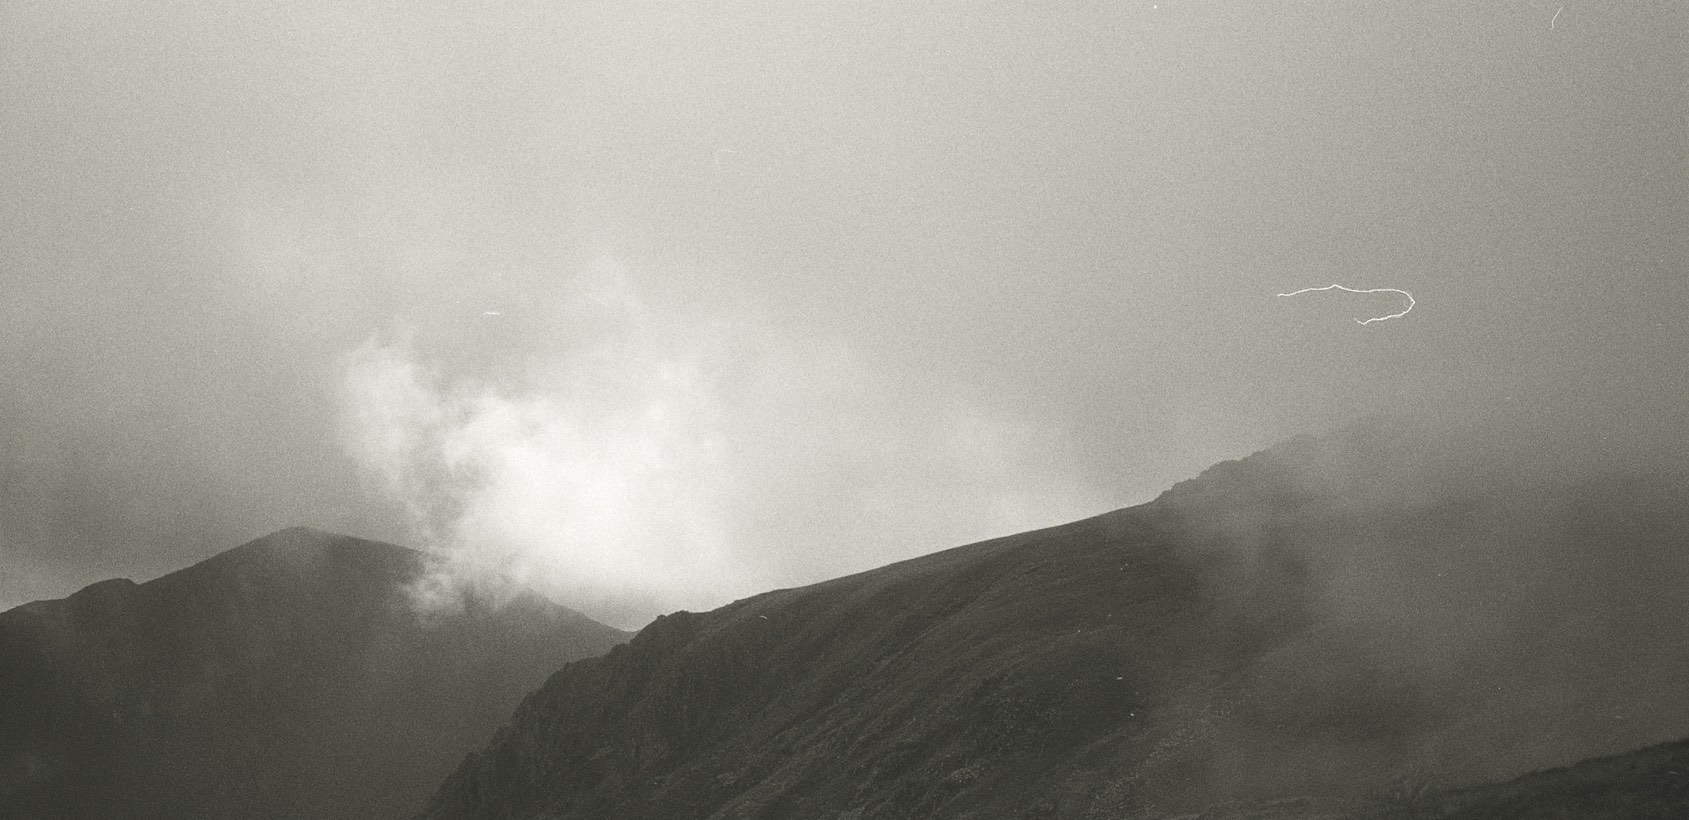 Black and white photo of a mountain in Wales